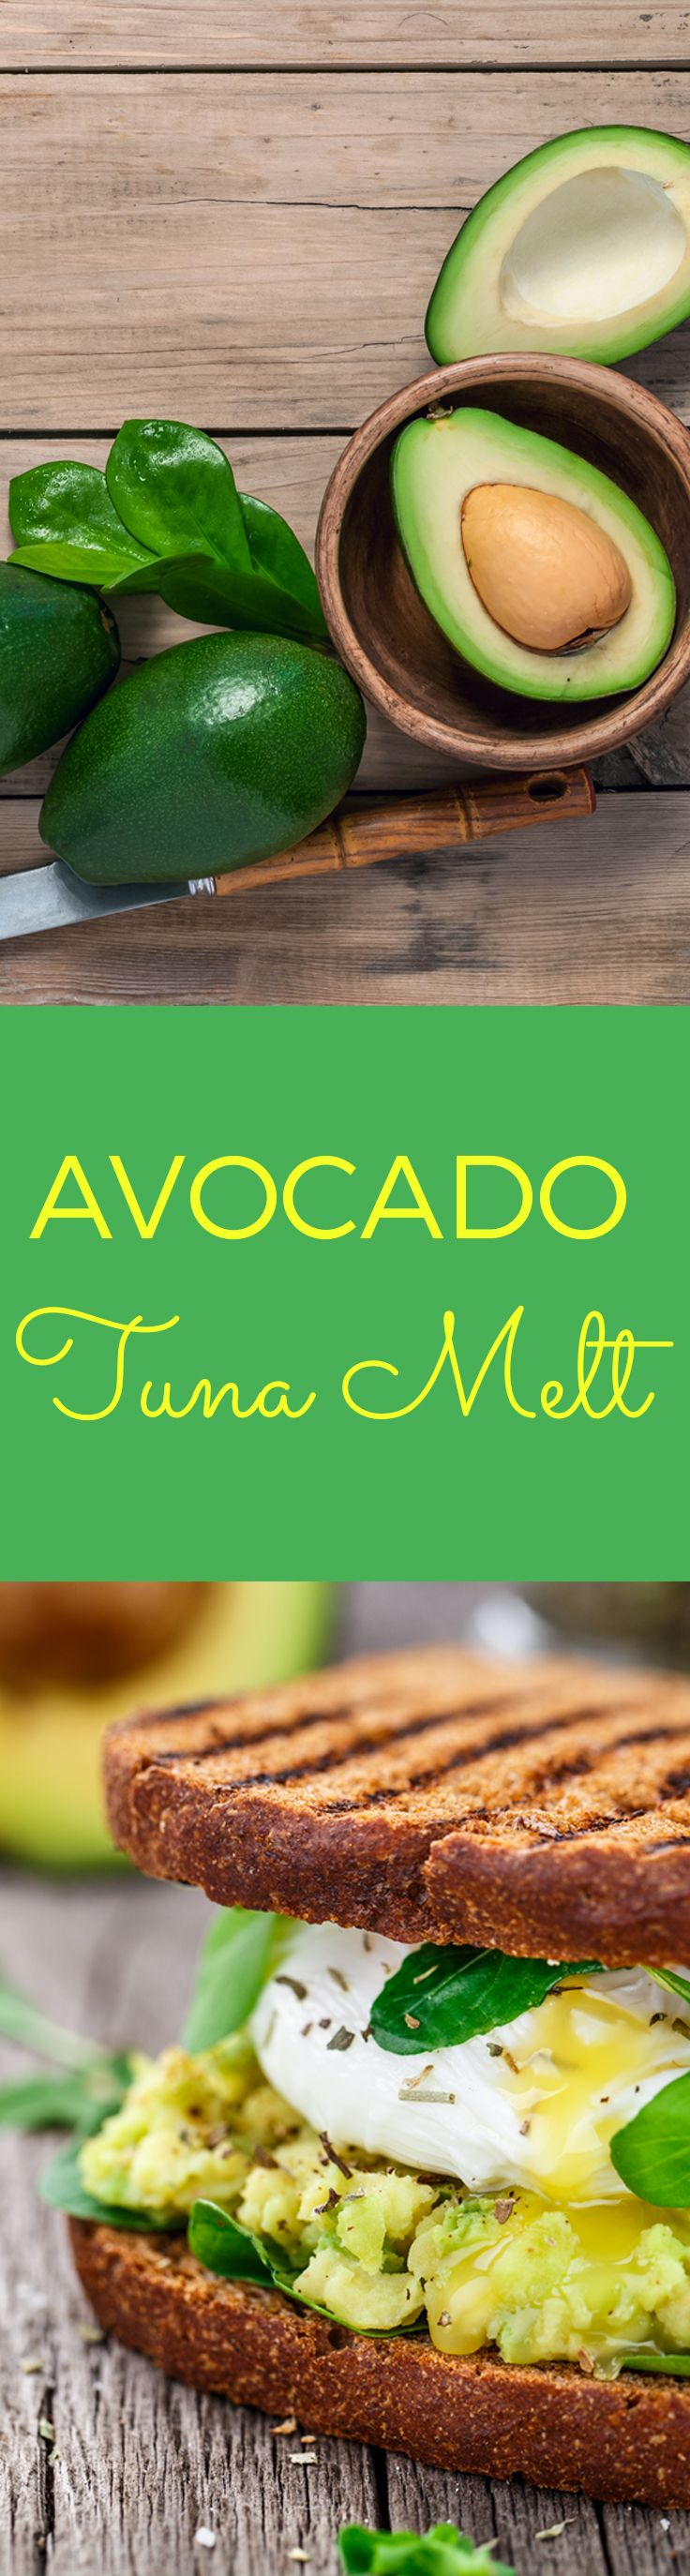 Eating Healthy will definitely maximize your detox weight loss goals! --Check out this yummy & more importantly healthy Avocado Tuna Melt Recipe and tell us what you think (: TFD